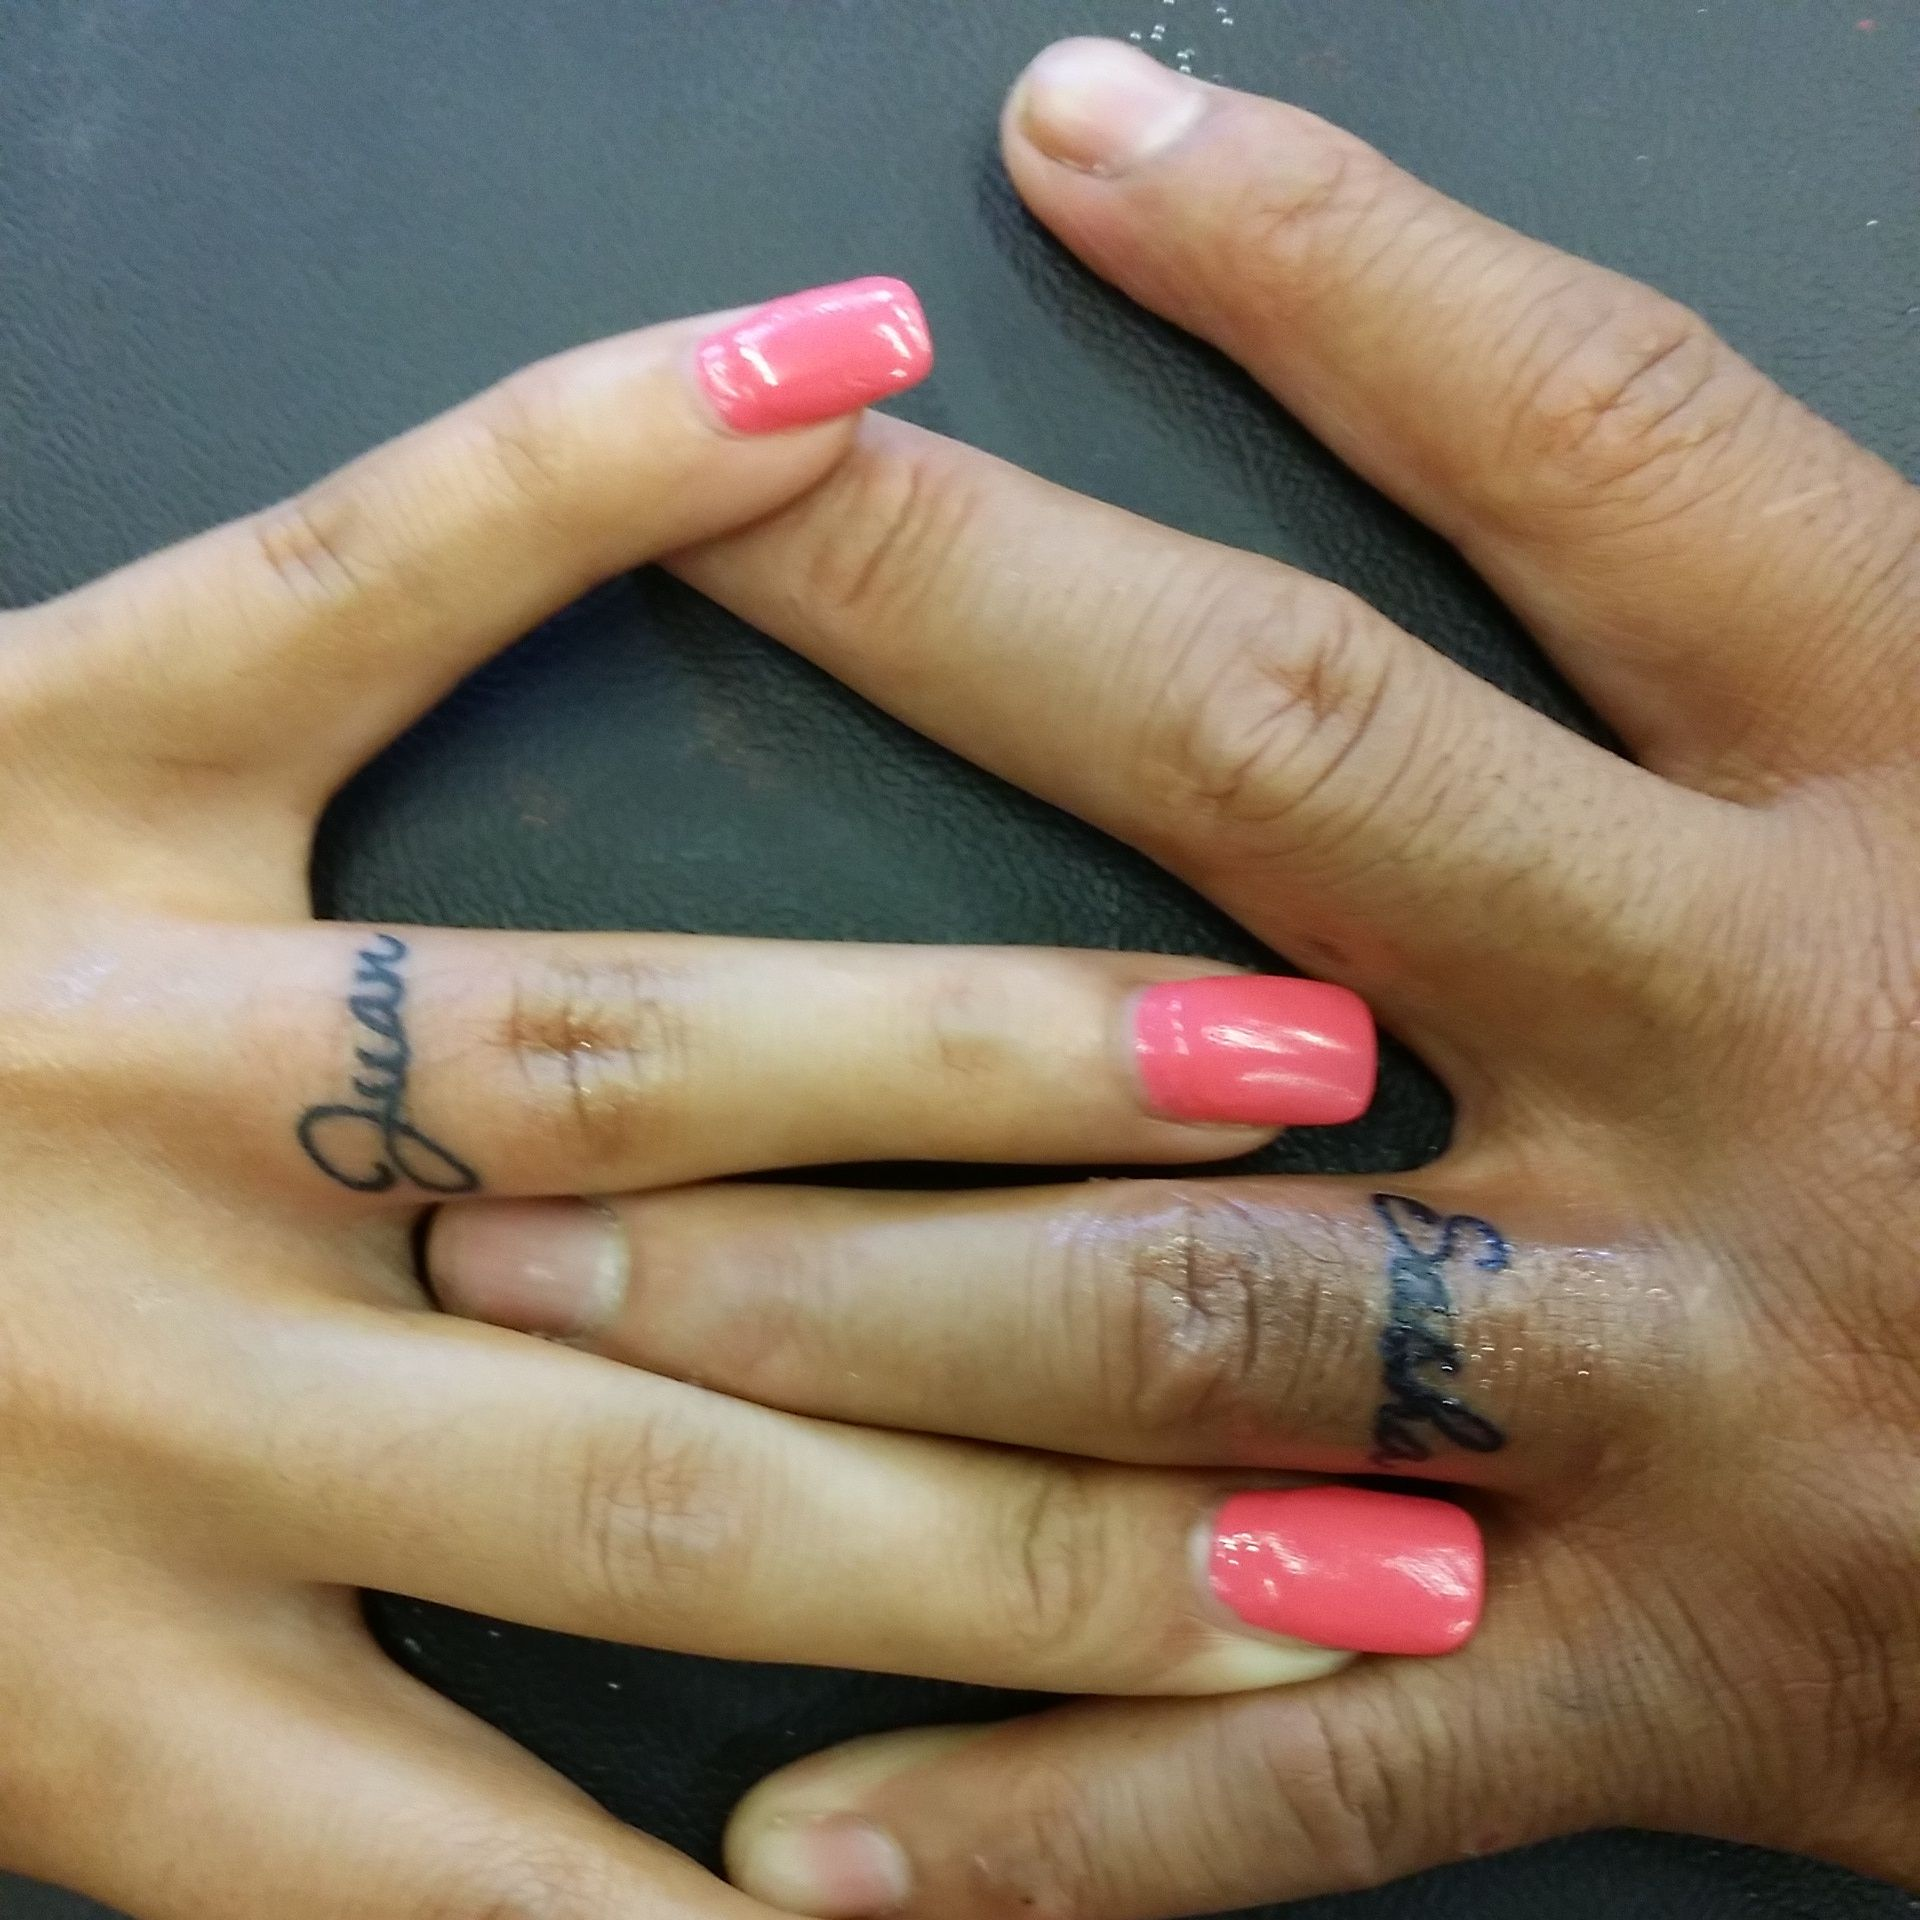 name on finger tattoos done by kristin inkaholics gainesville ga place to go for tattoos and. Black Bedroom Furniture Sets. Home Design Ideas